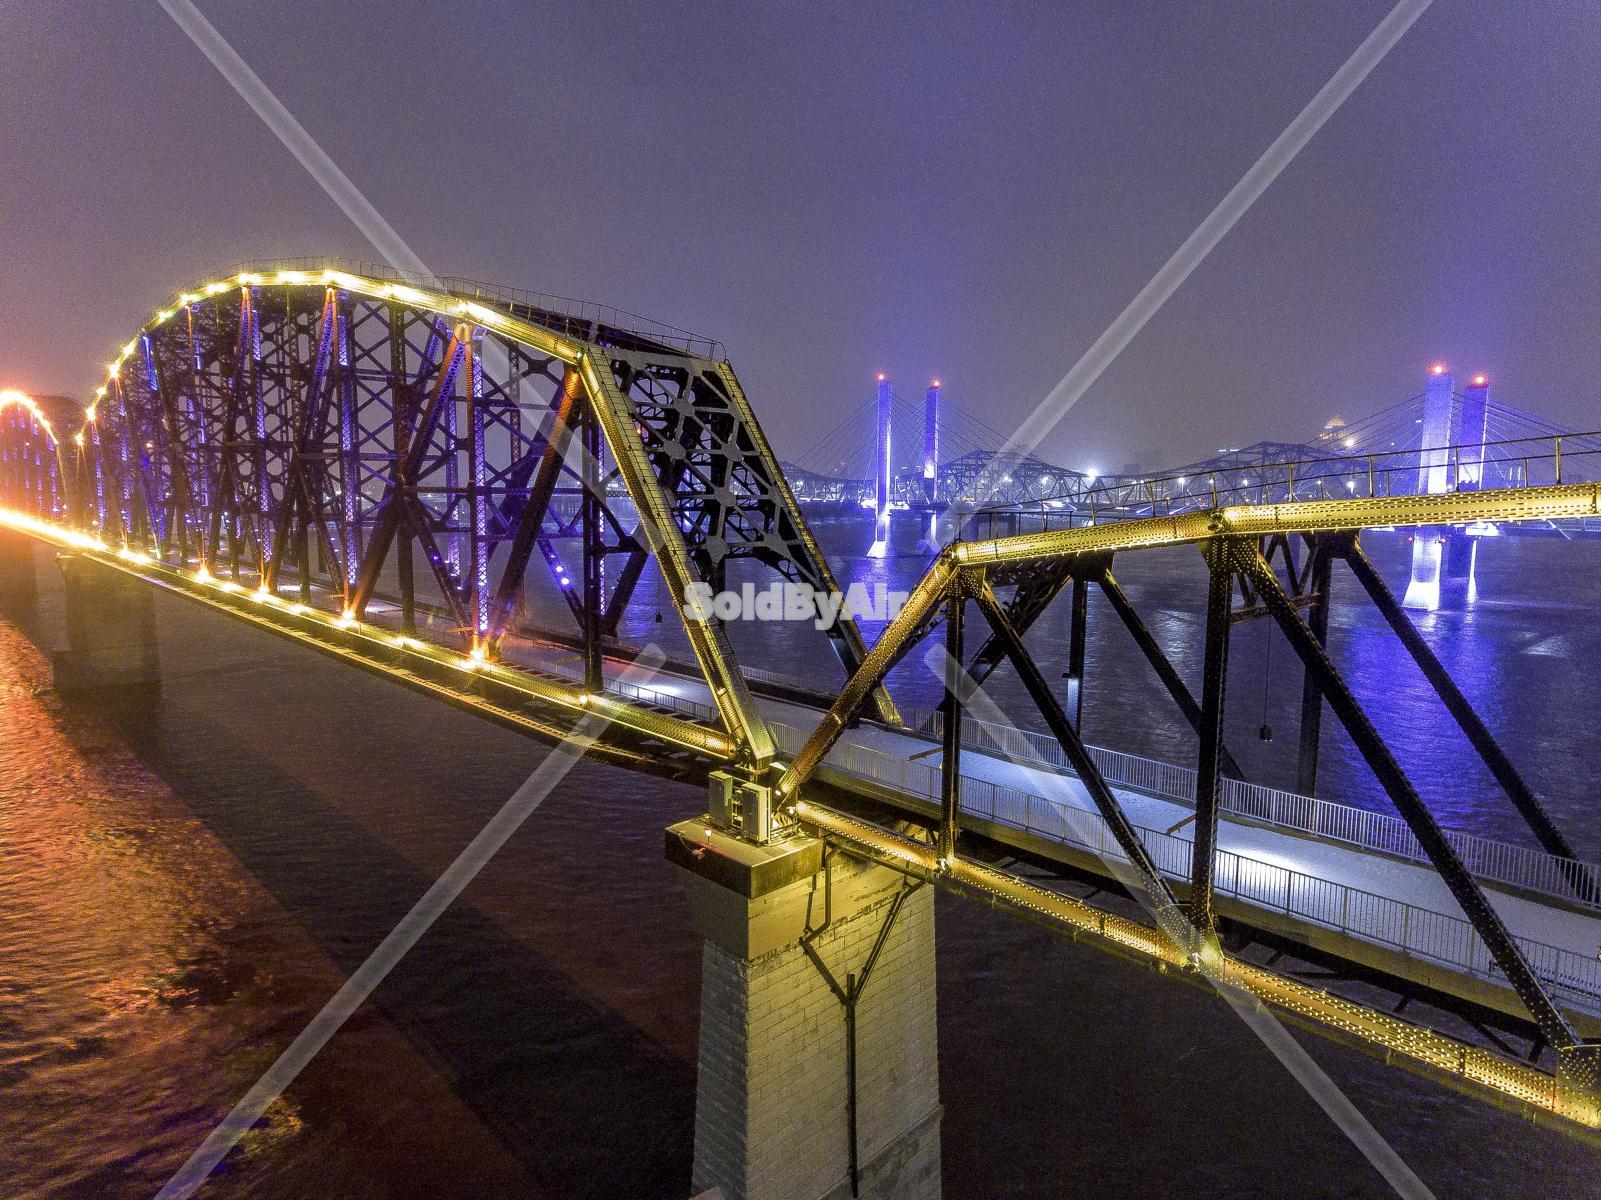 Drone Photo of Big Four Bridge and Abraham Lincoln Bridge lit up  in Louisville Kentucky